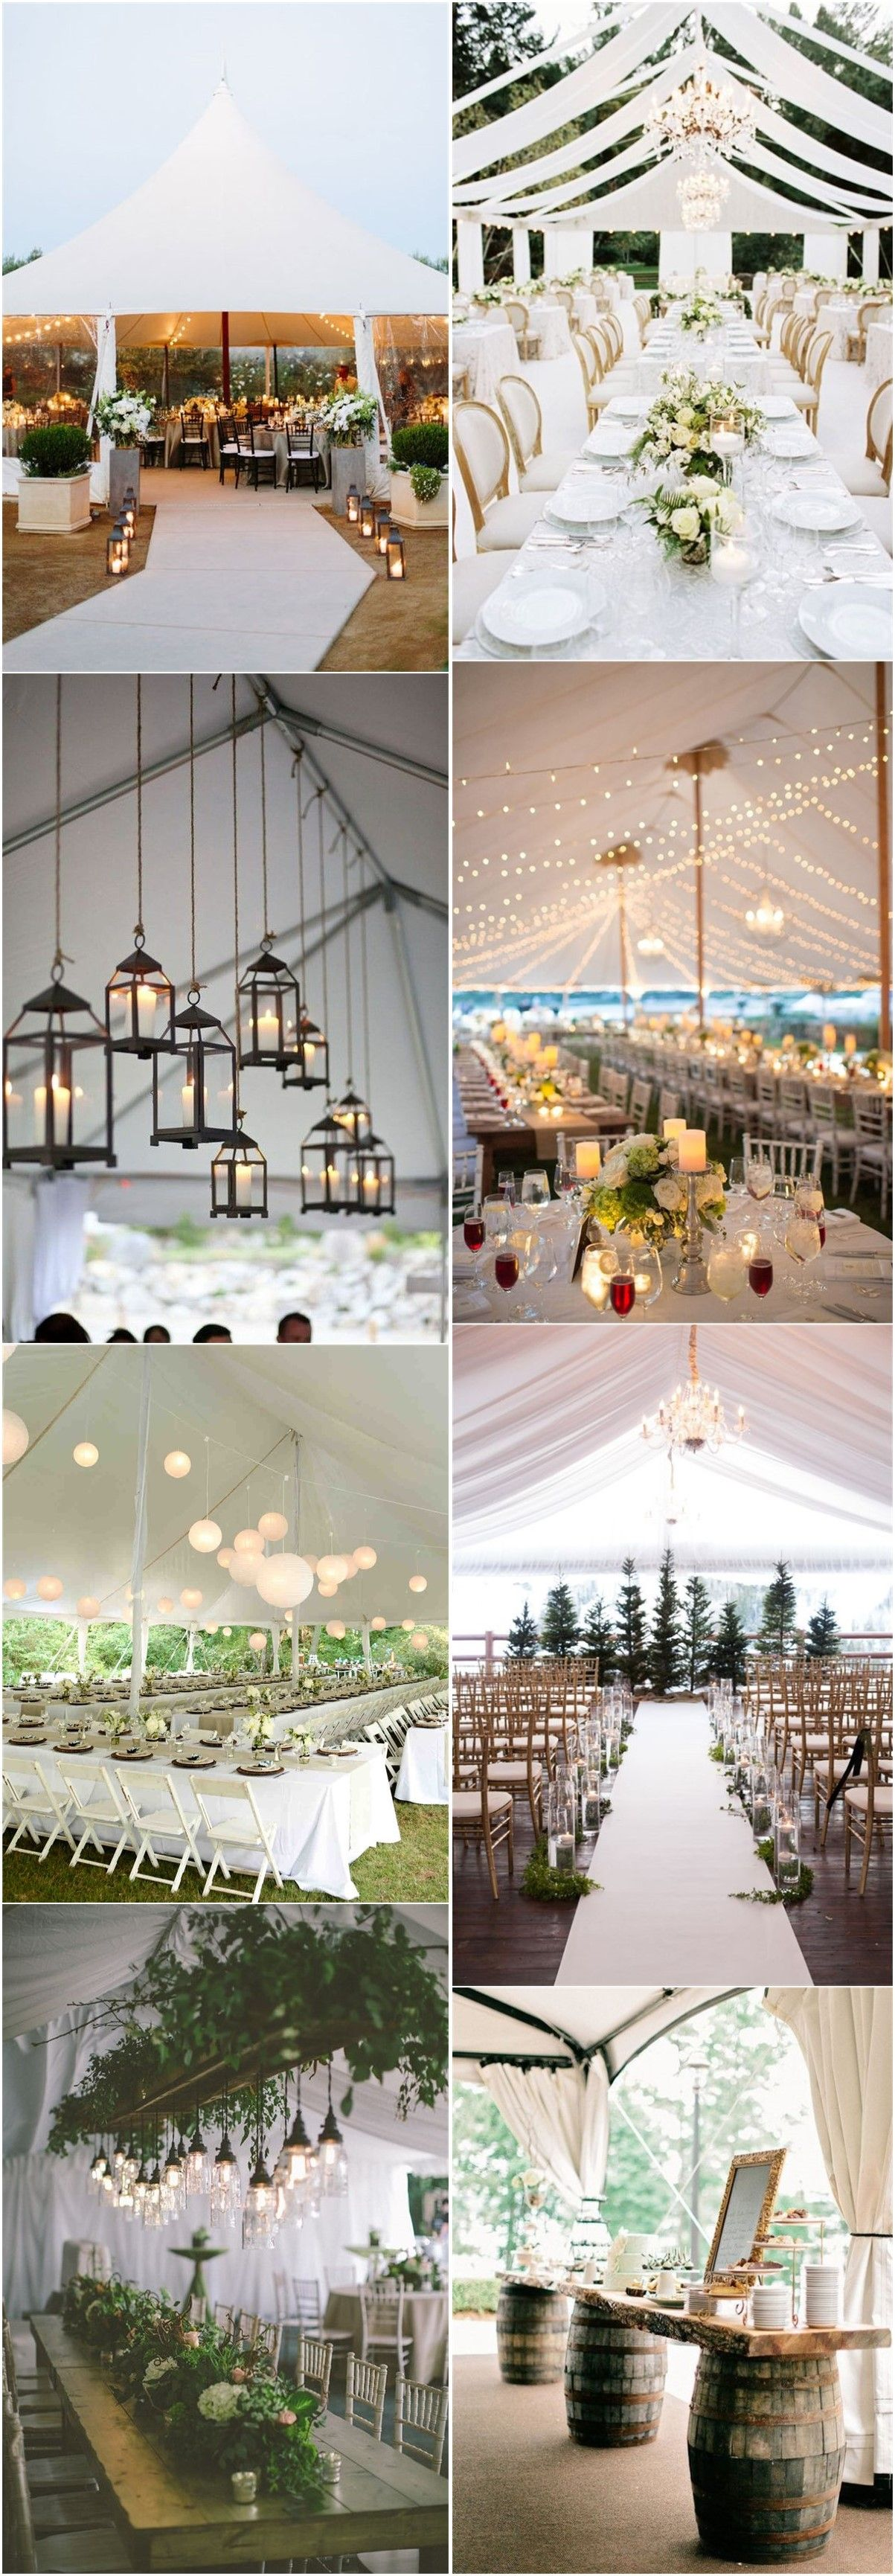 Wedding tent decoration images   Outdoor Wedding Tent Decoration Ideas Every Bride Will Love